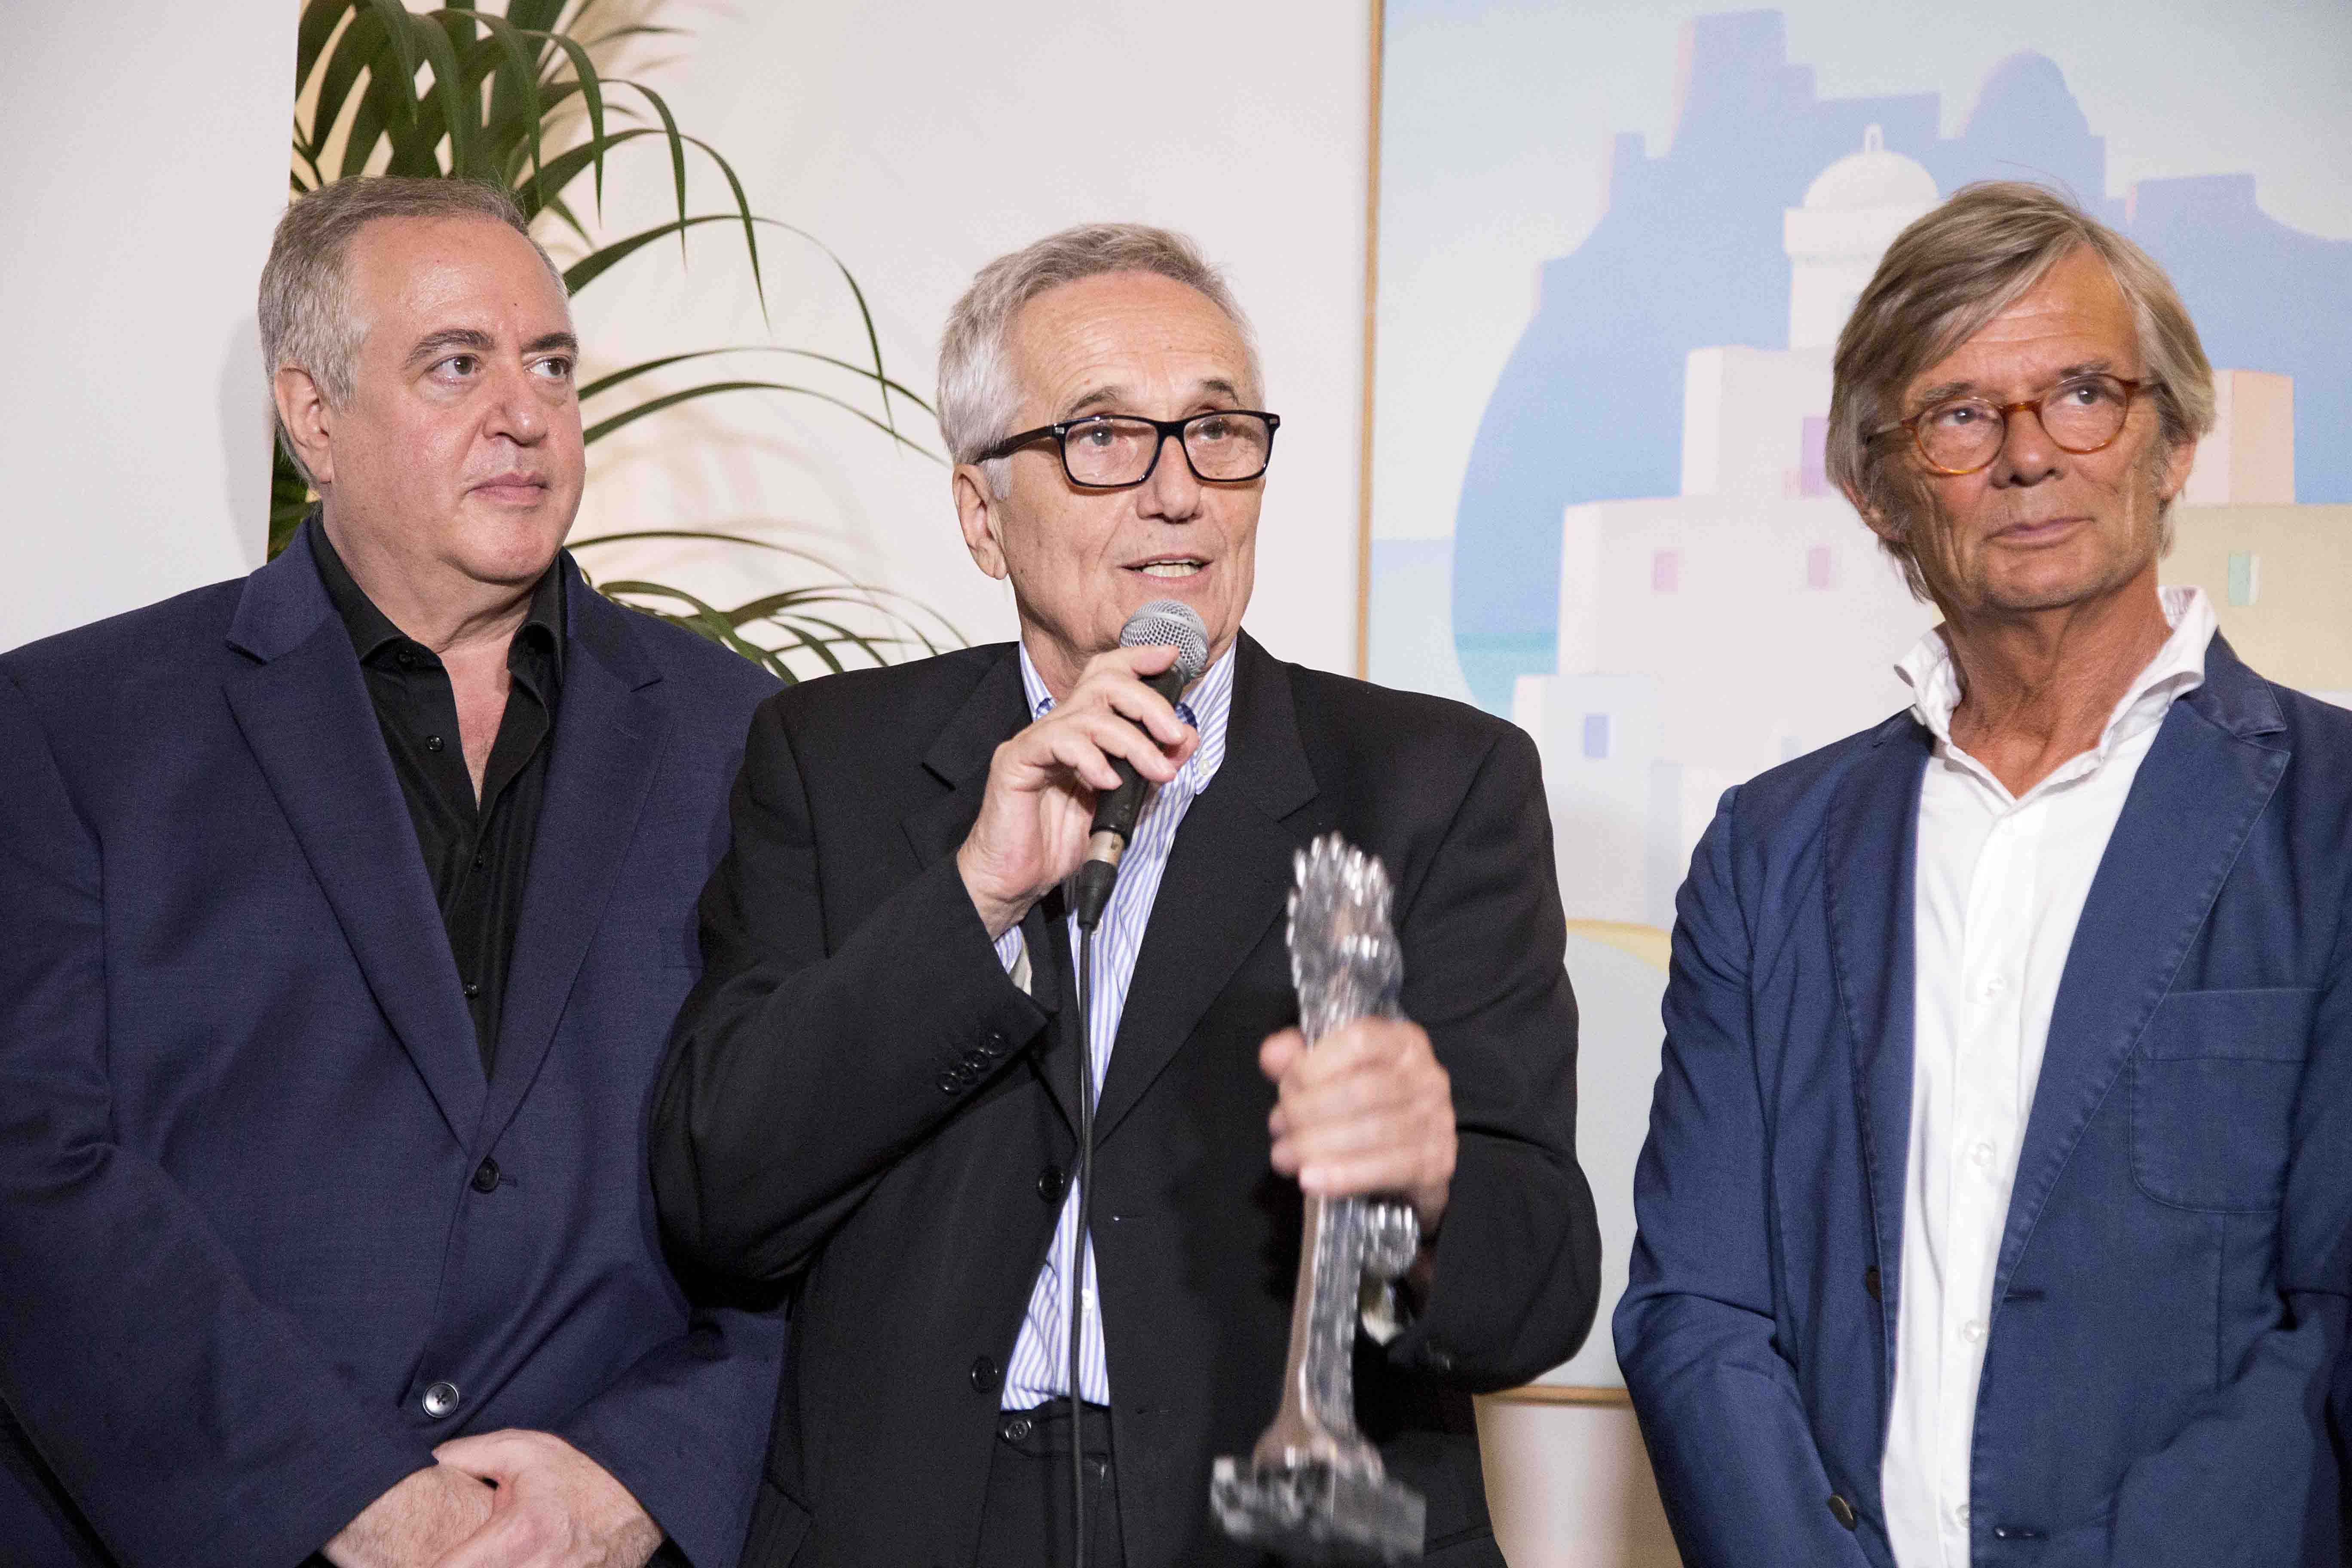 Premiazioni Ischia Global Fest - Vallelonga, Bellocchio e August